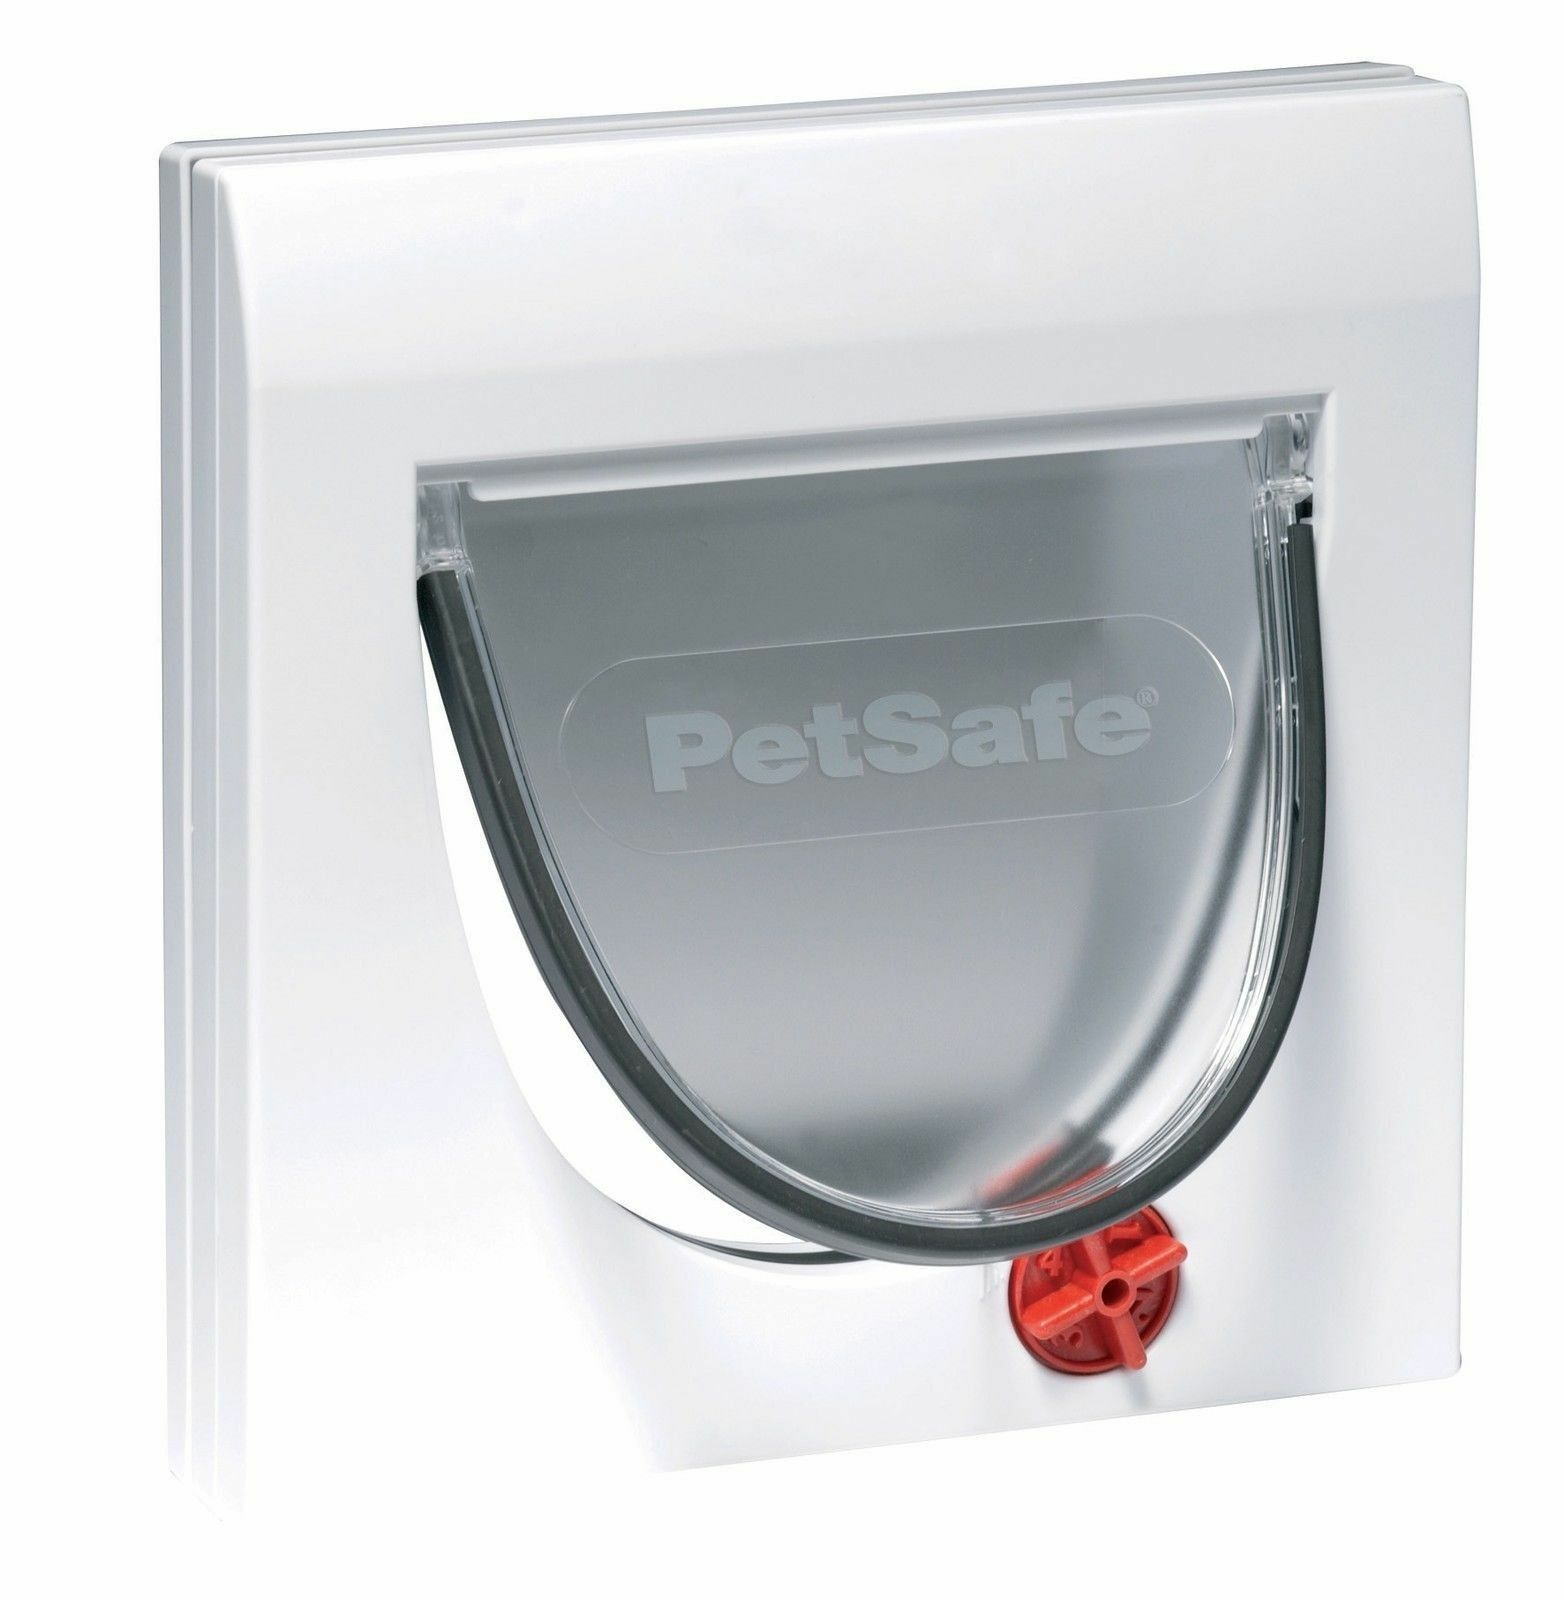 CAT FLAP DOOR IN WHITE WITH 4 WAY LOCKING MECHANISM. (3 Year Warranty)